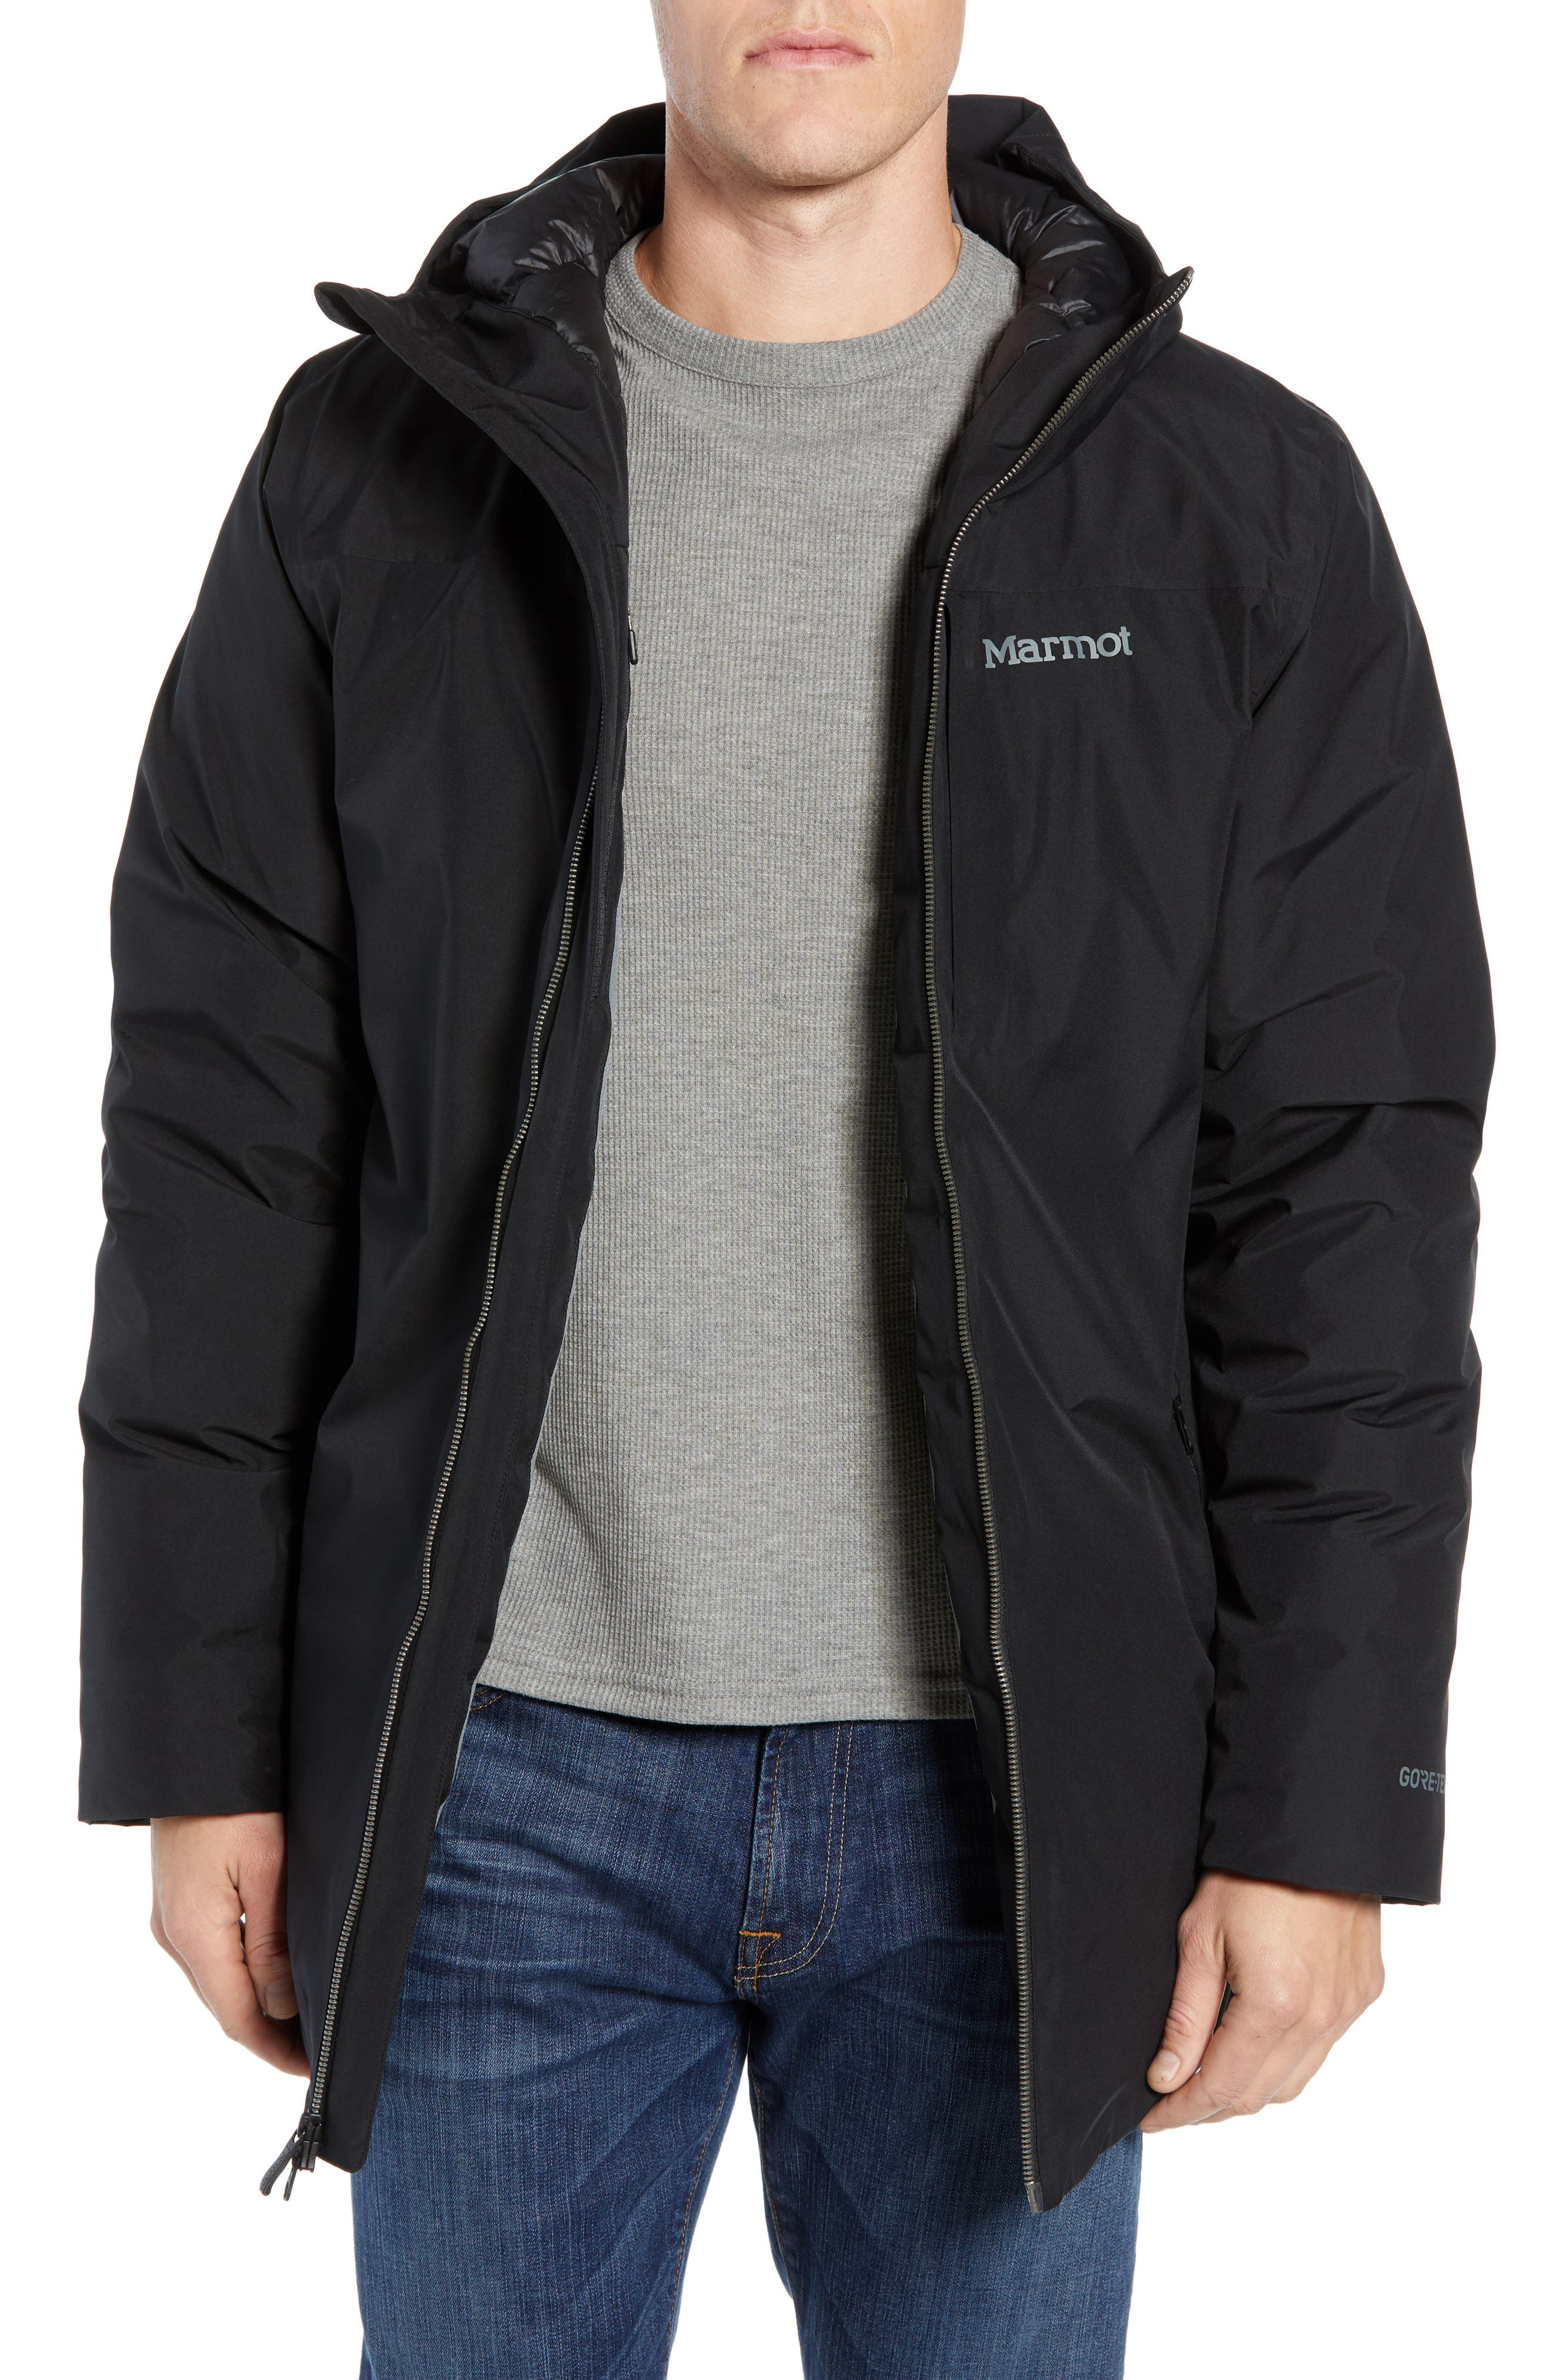 Marmot Oslo Gore-Tex 700 Fill Power Recycled Down Jacket